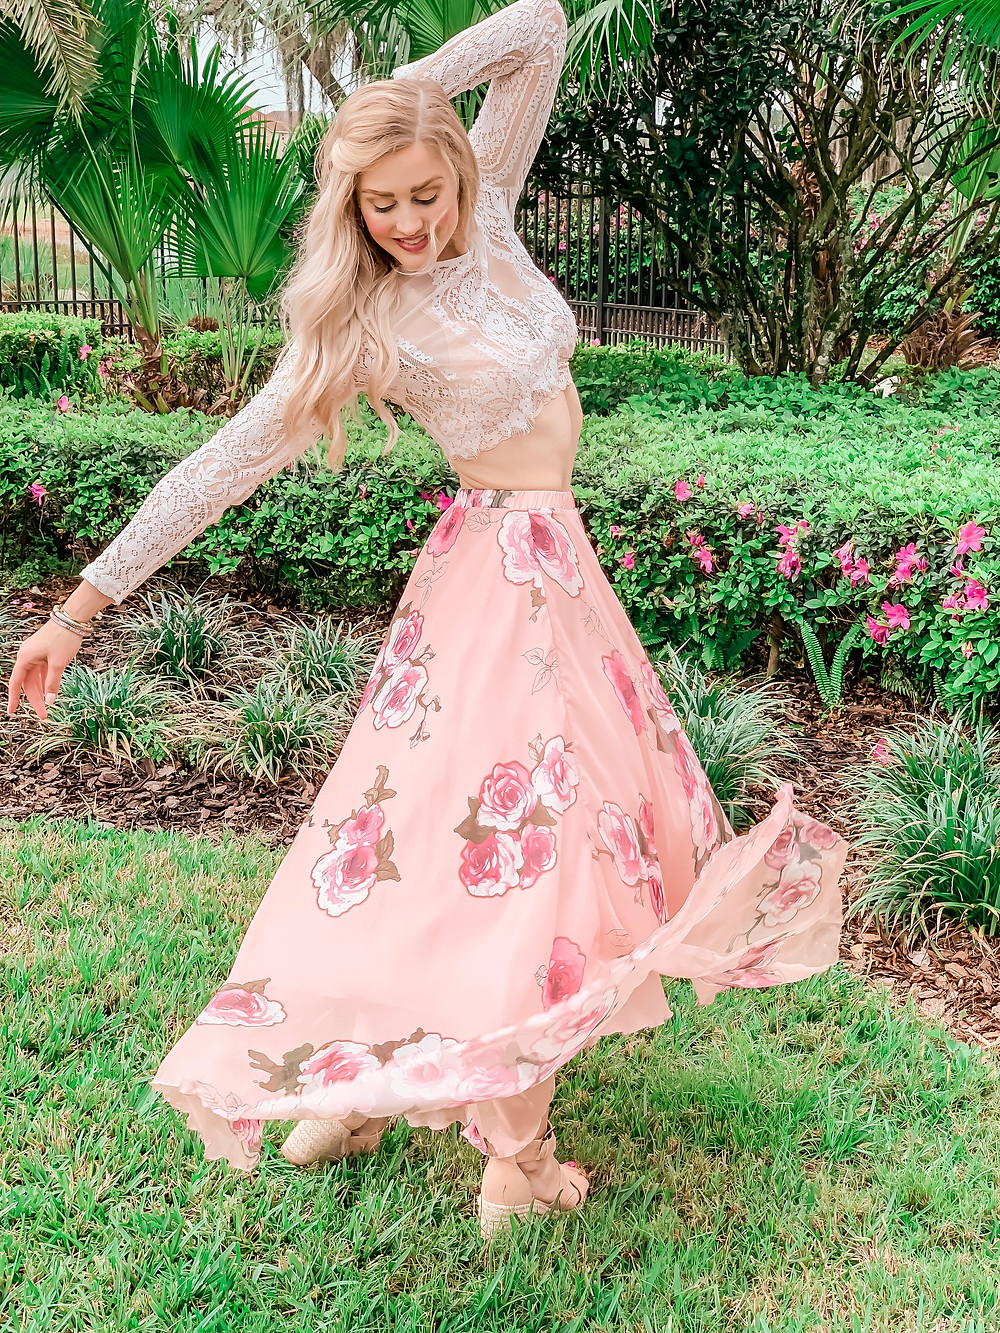 Darling Florals for Spring